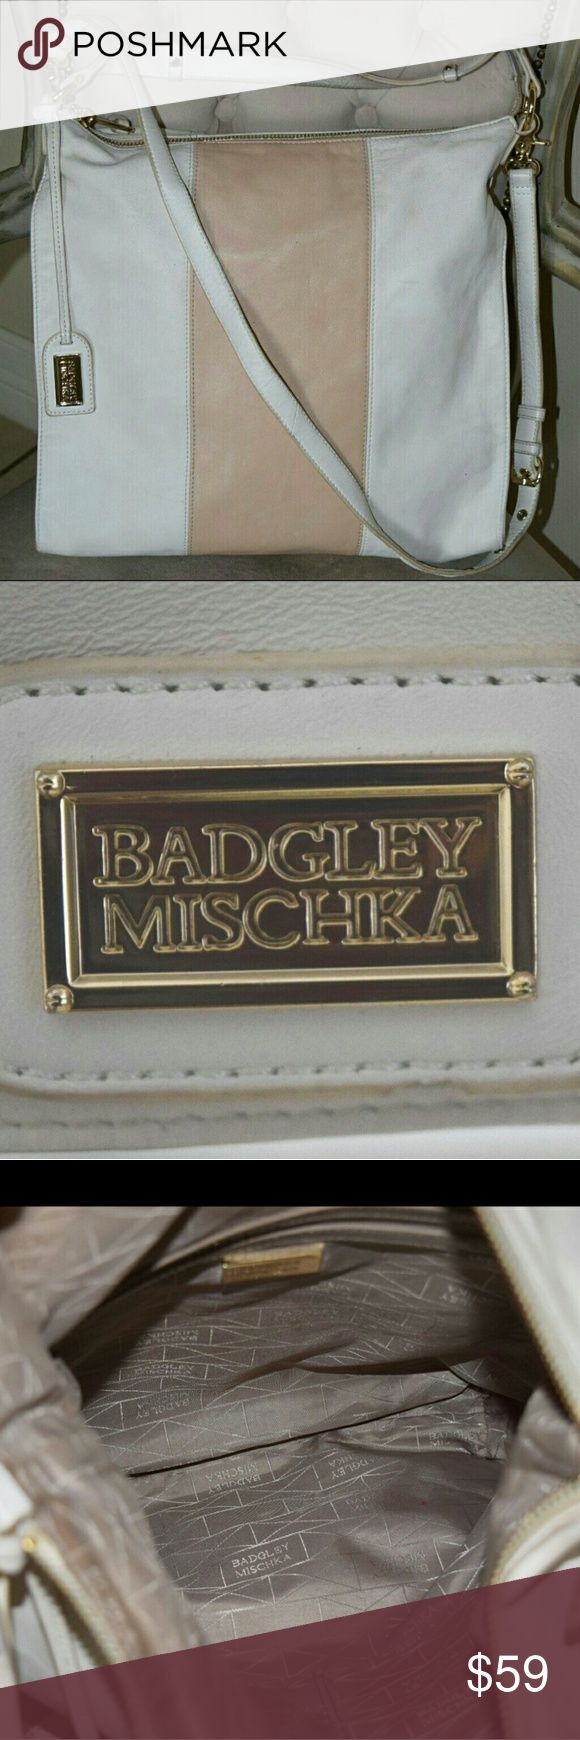 "Classy Badgley Mishka White/Tan Bag, Pre-owned. 15"" Tall x 14 1/2"" wide, 2"" deep.  Pre-owned, Classy White/Tan Leather large slouchy bag Top handle/large strap to use as cross body Gold tone accessory.   *Bag has a few stains and minor scratches -  sign of wear on shoulder strap- please see photos.  Inside of bag has zip pocket and two open pockets.  Zipper closure.  I will be happy to answer any questions.  Thanks for viewing this information. Badgley Mischka Bags Shoulder Bags"